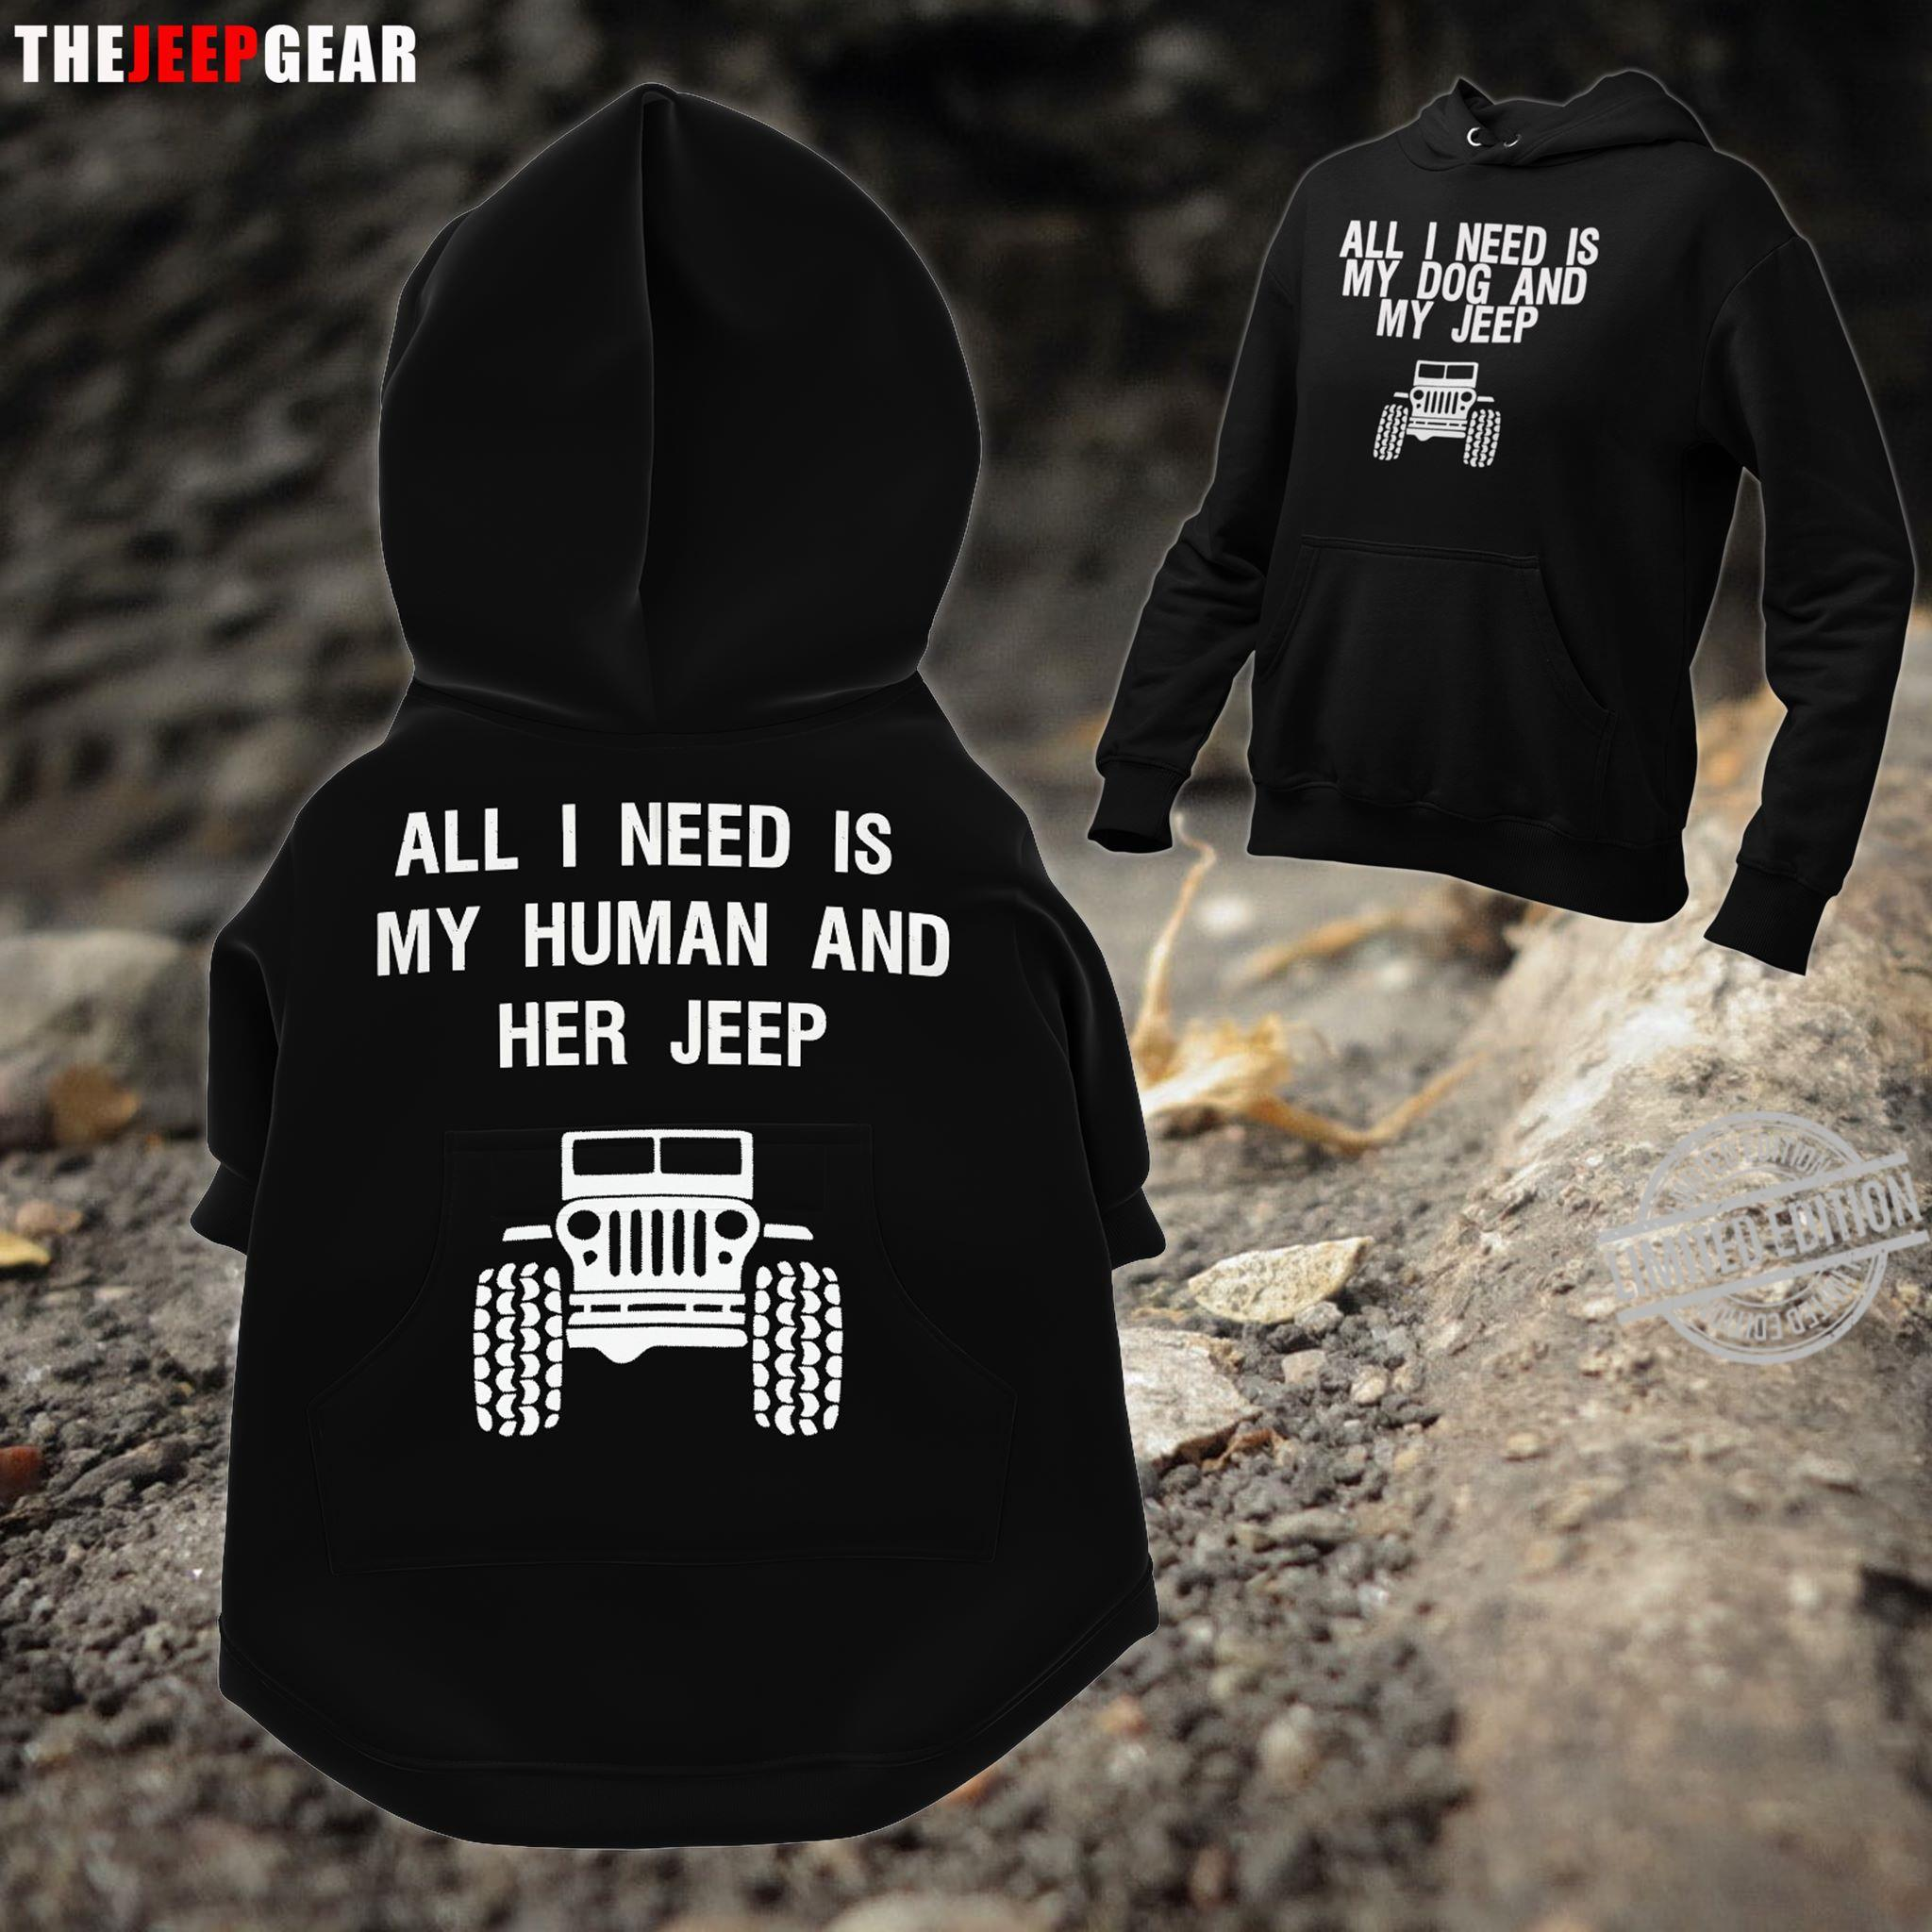 All I Need is My Human And Her Jeep Shirt